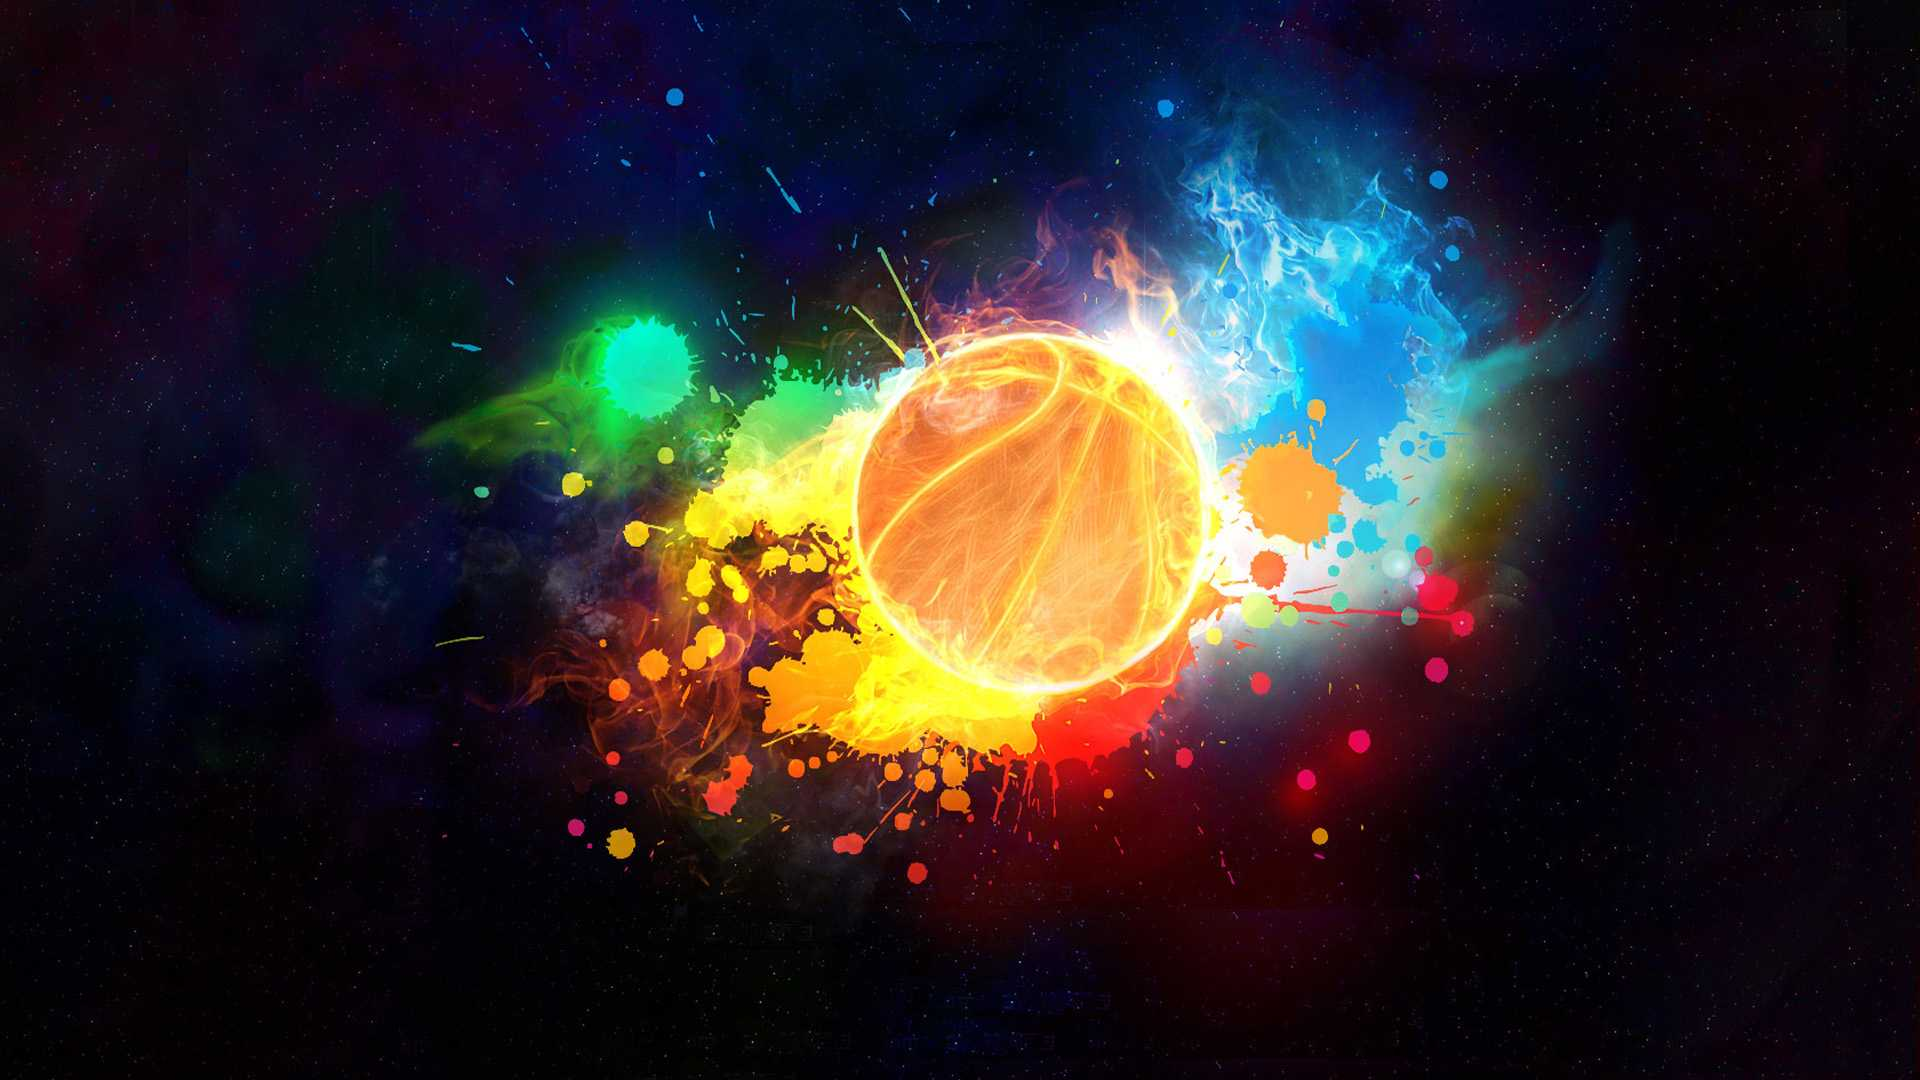 download Basketball Wallpapers HD [1920x1080] for your 1920x1080